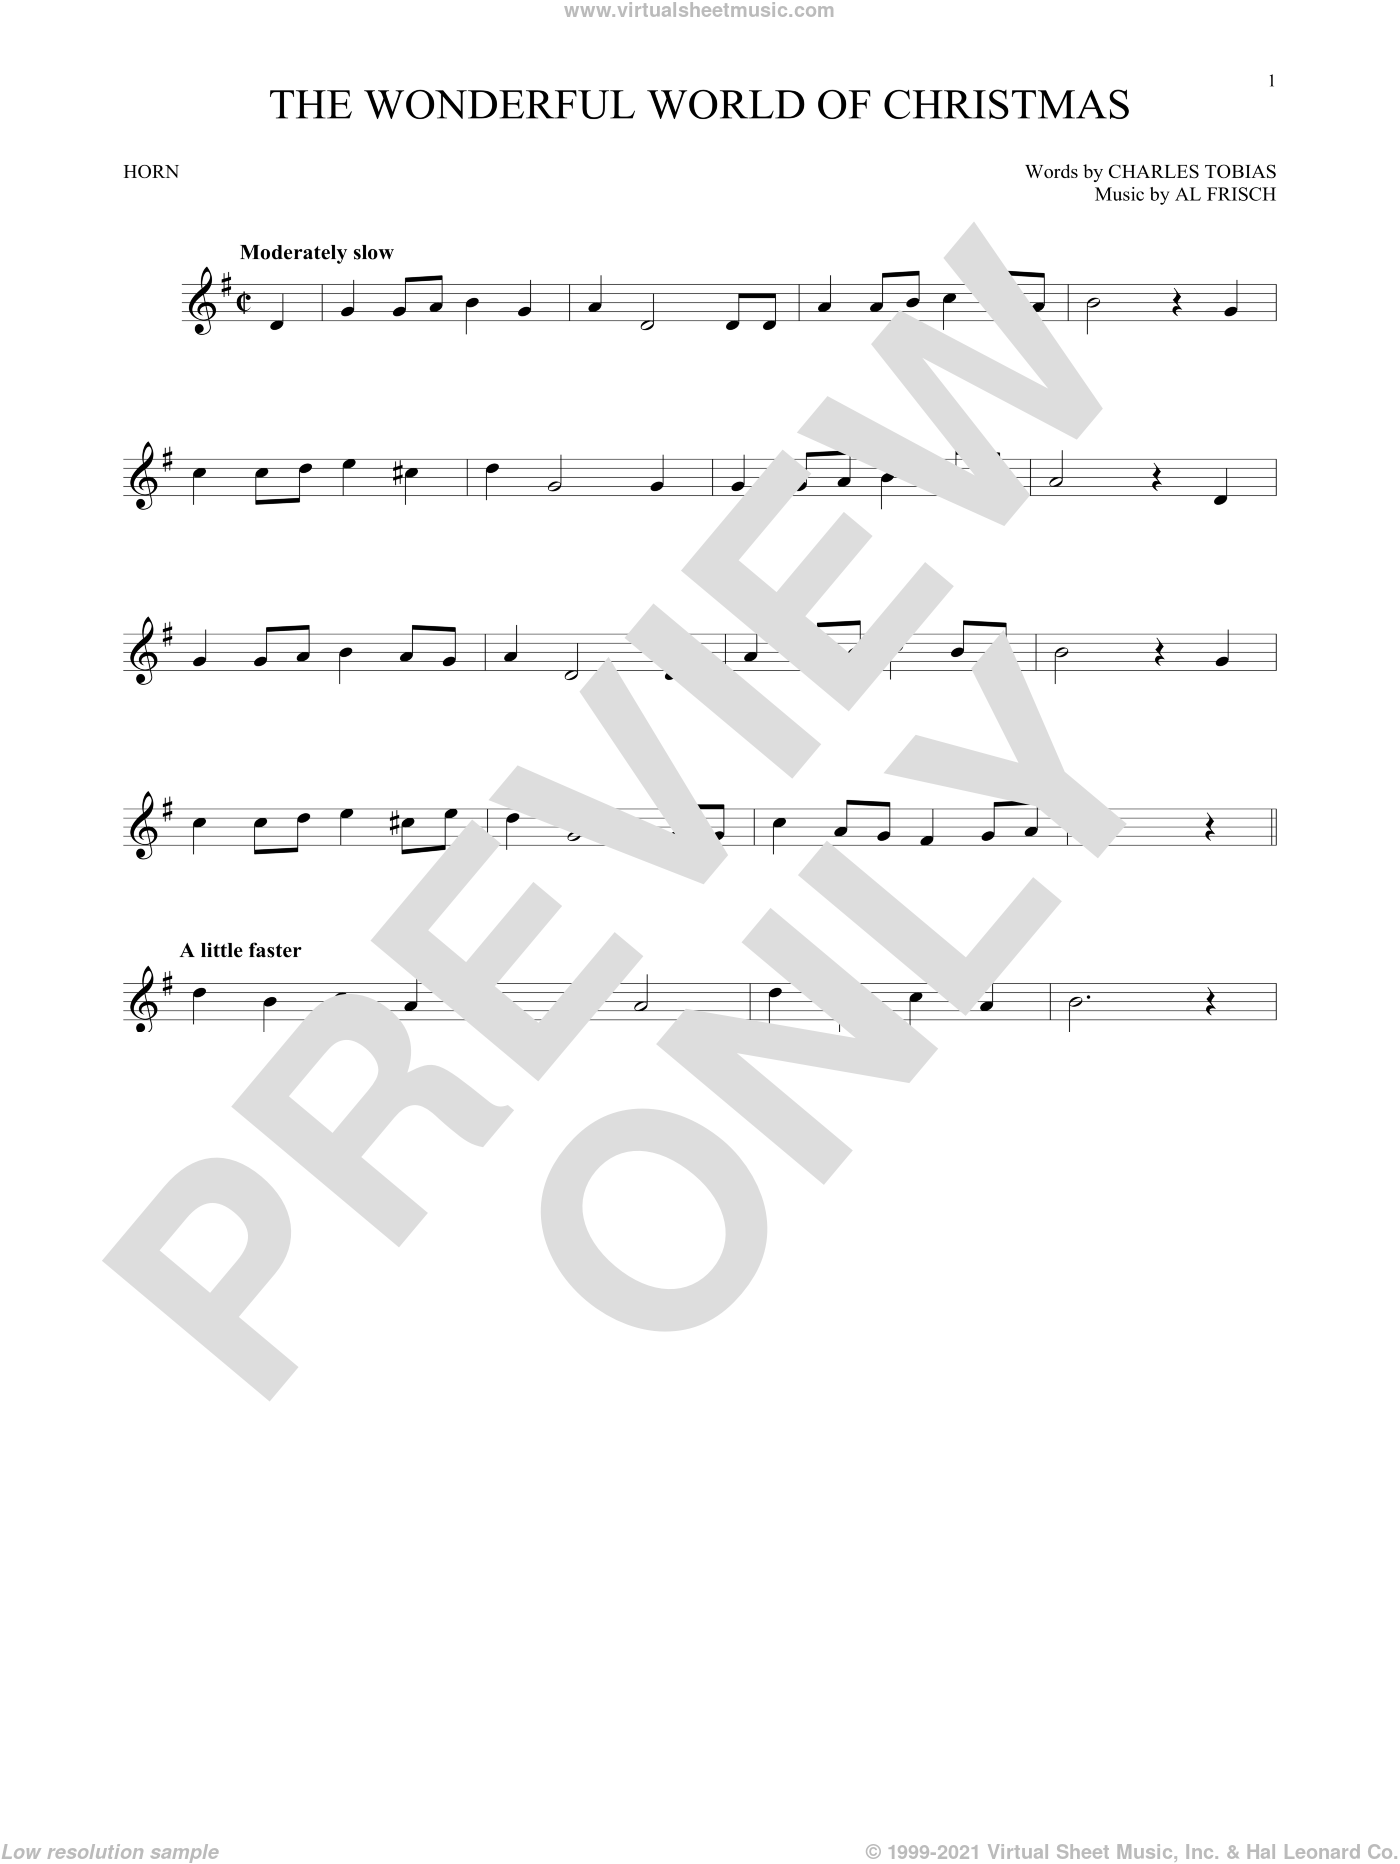 The Wonderful World Of Christmas sheet music for horn solo by Elvis Presley, Al Frisch and Charles Tobias, intermediate skill level